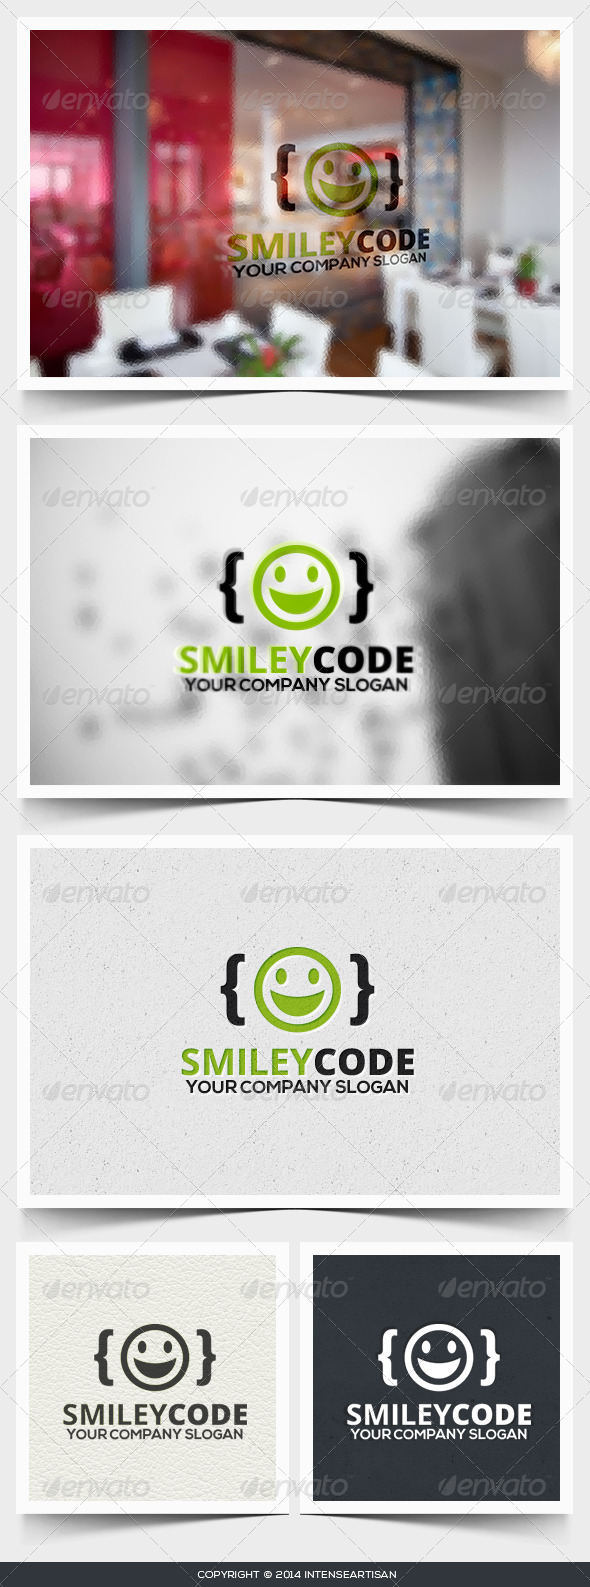 Smiley Code Logo Template - Objects Logo Templates